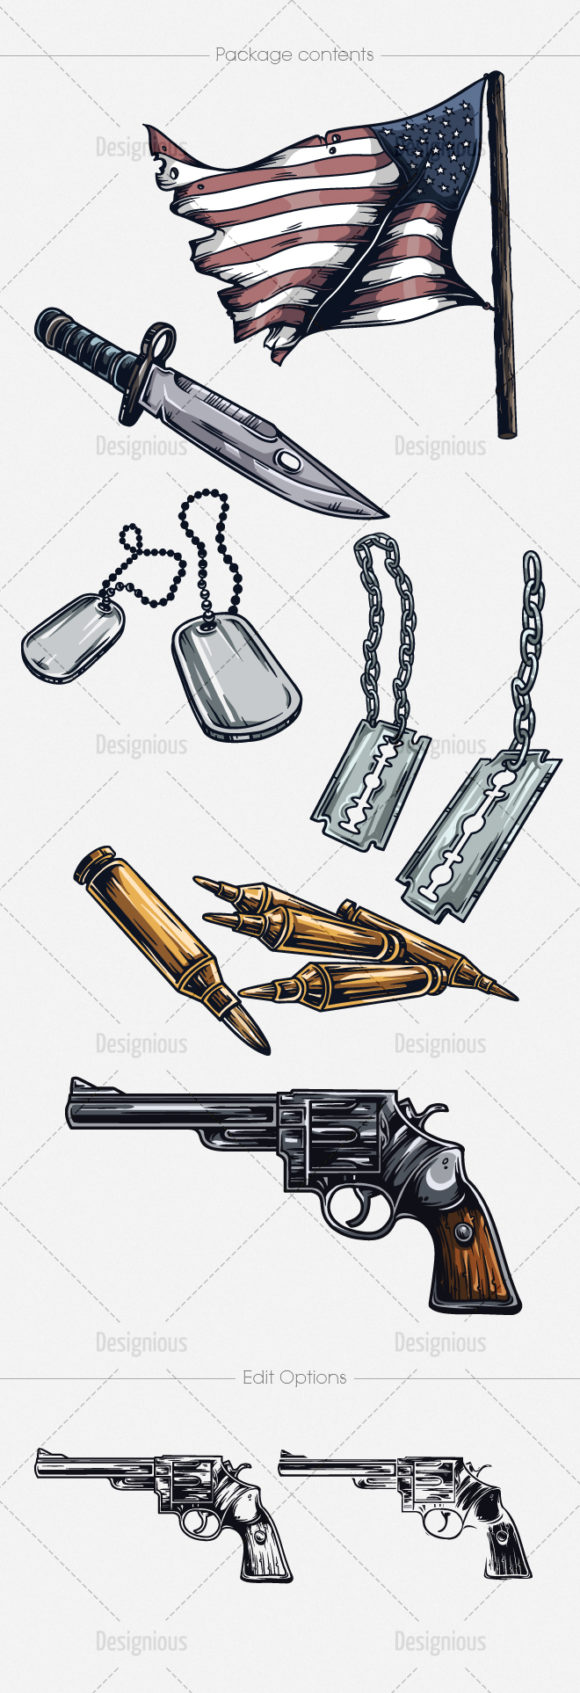 Army Vector Pack 1 products designious vector army 1 large